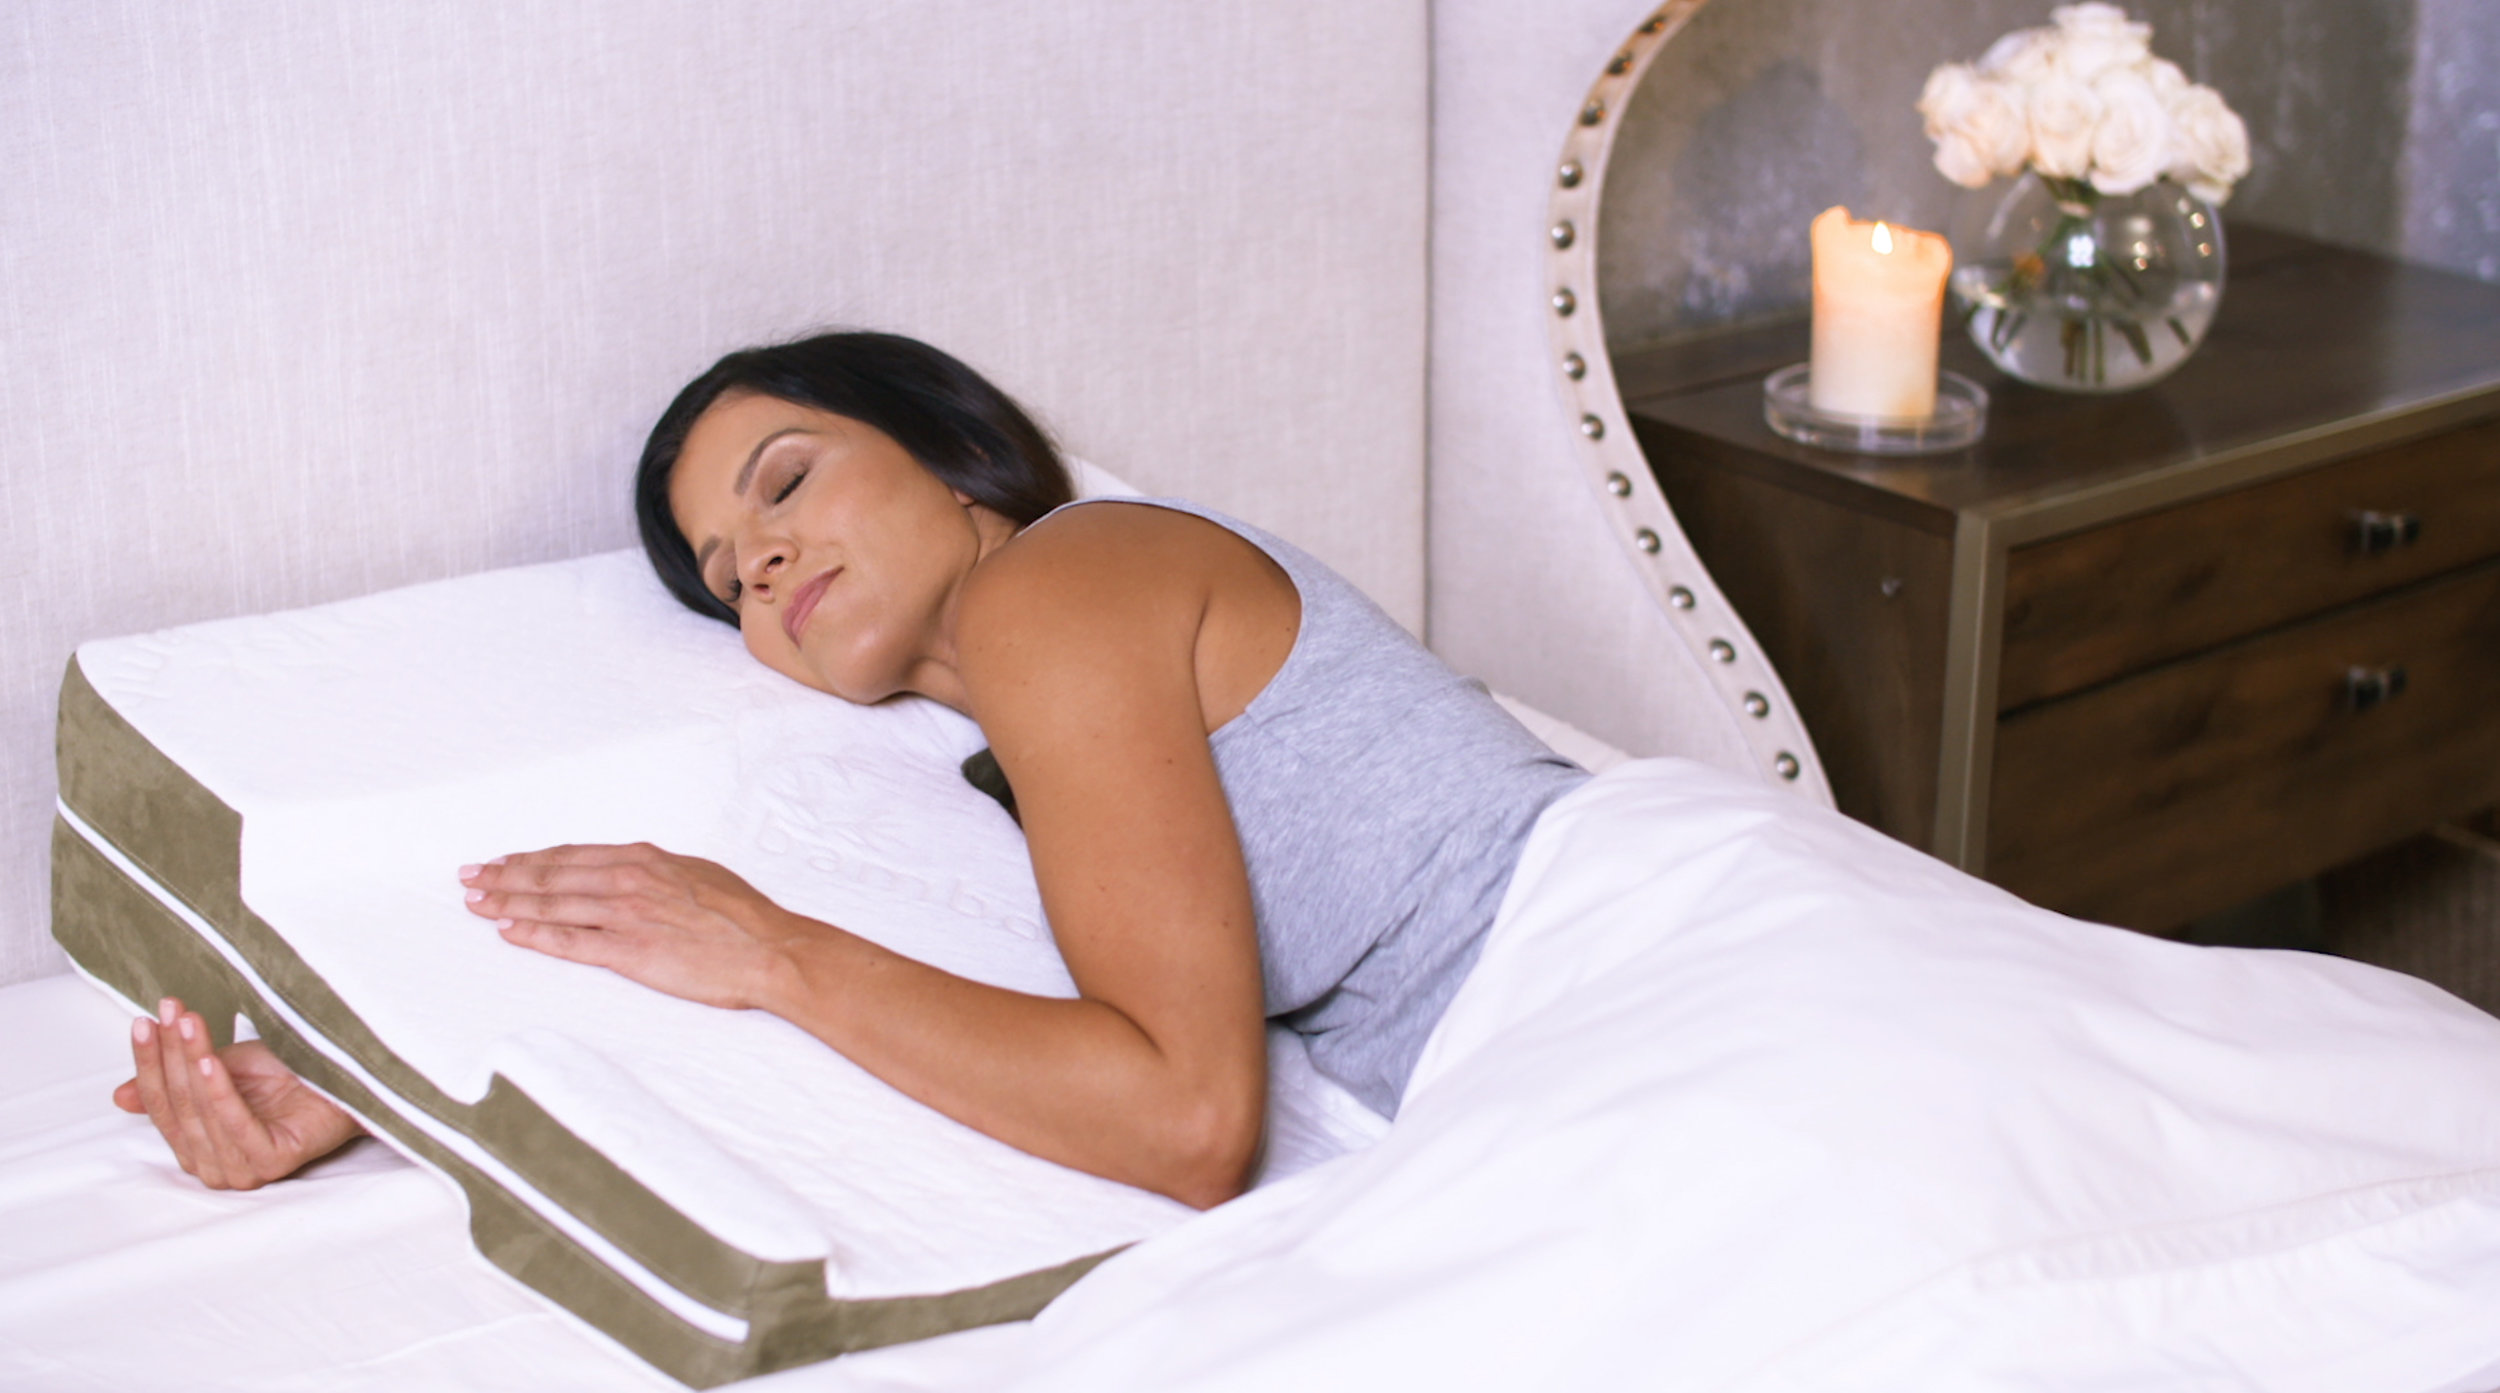 Hug Position - Turn in toward the pillow for another shoulder-pain free way to sleep.